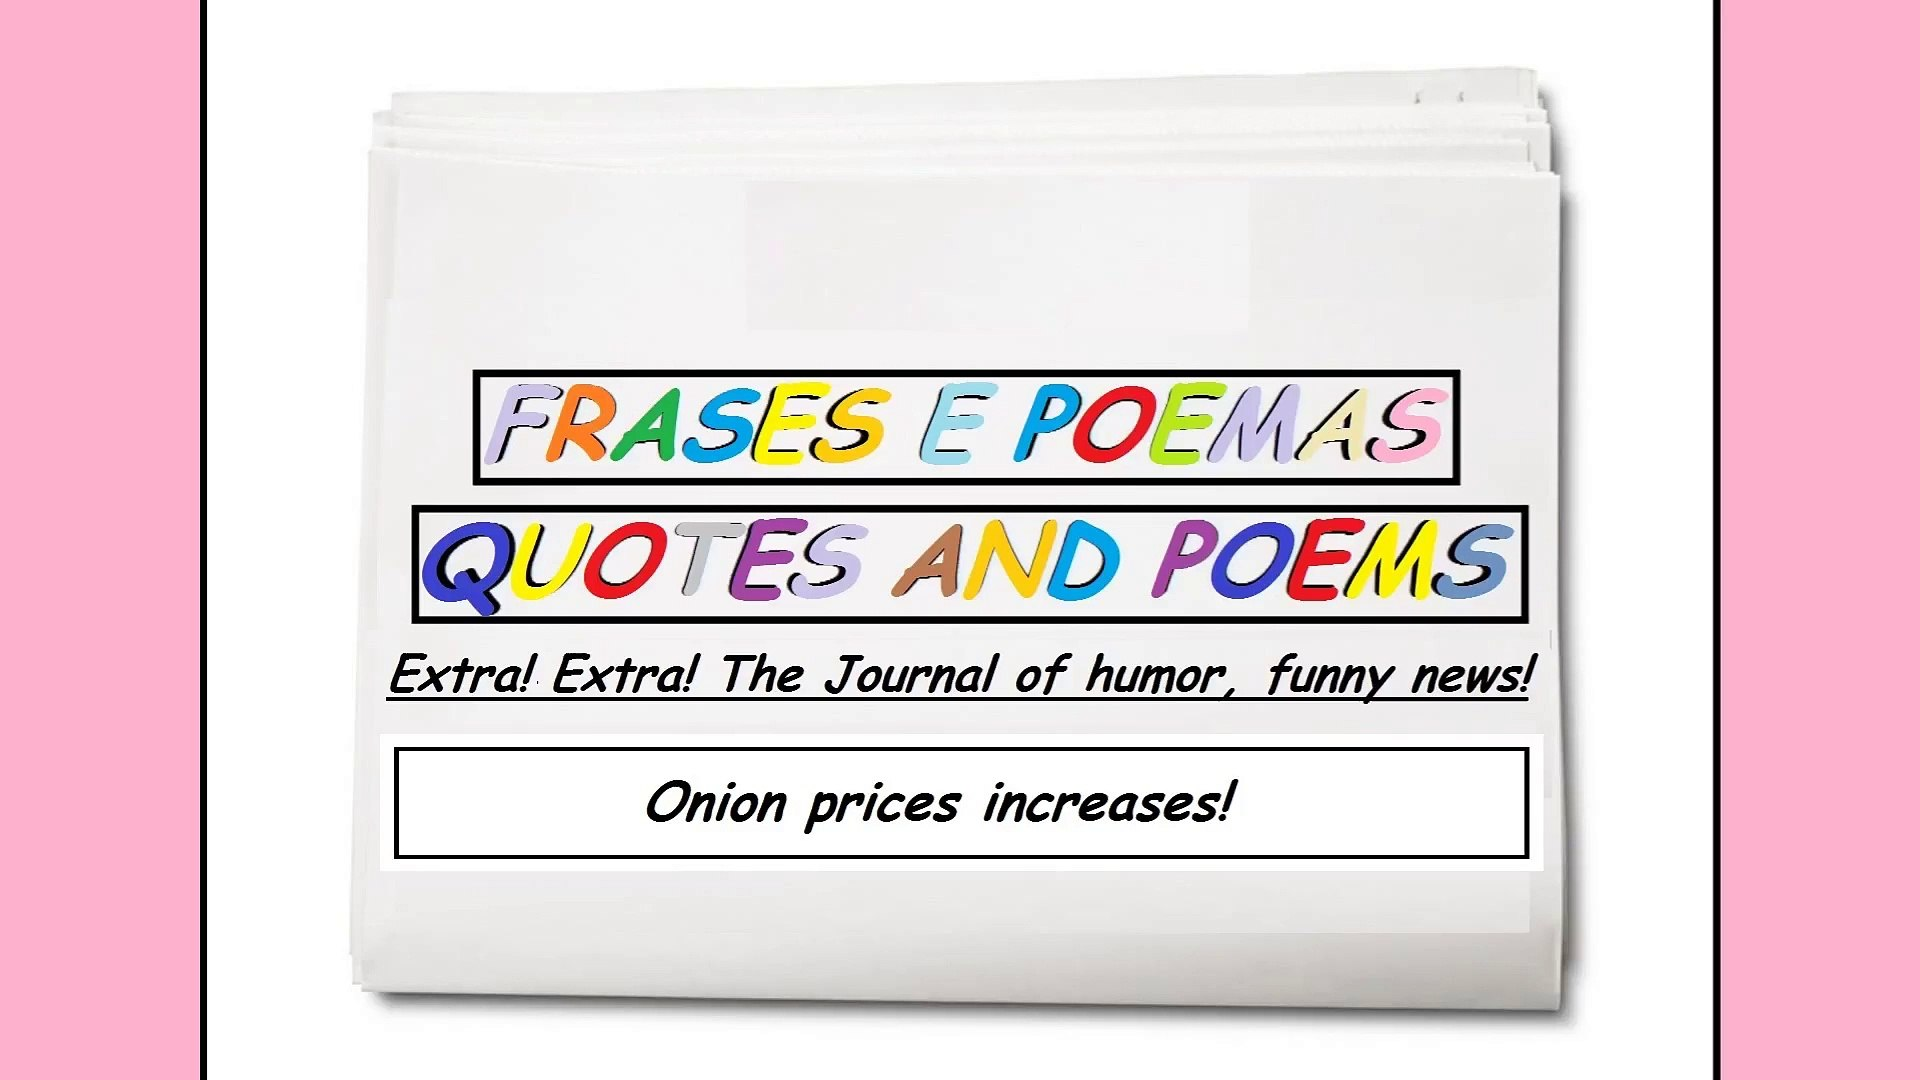 Funny News Onion Prices Increases Quotes And Poems